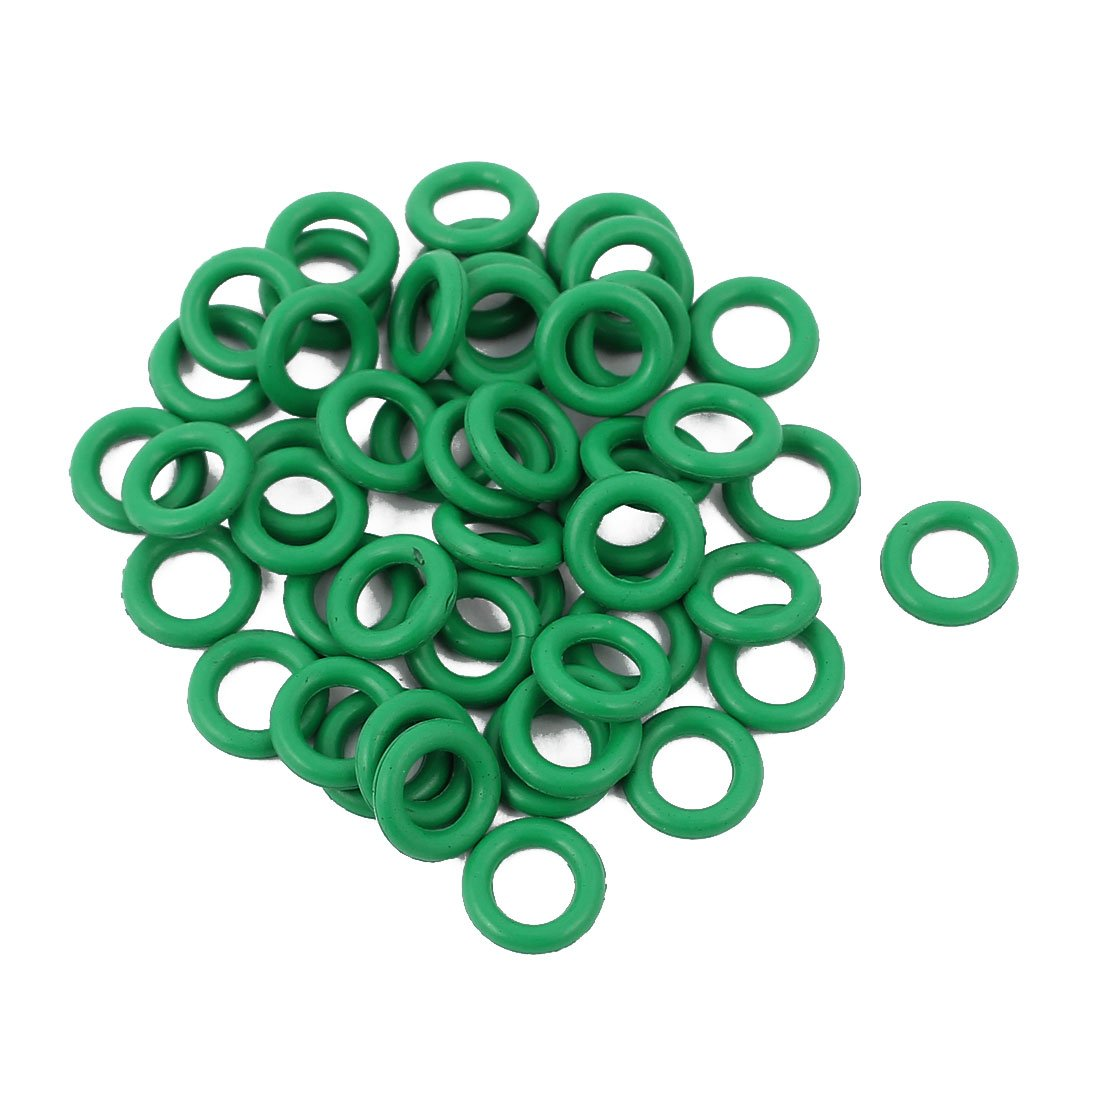 uxcell 50pcs 1.5mm Thick Heat Resistant Mini Green O-Ring Rubber Sealing Ring 7mm OD a16111800ux1218